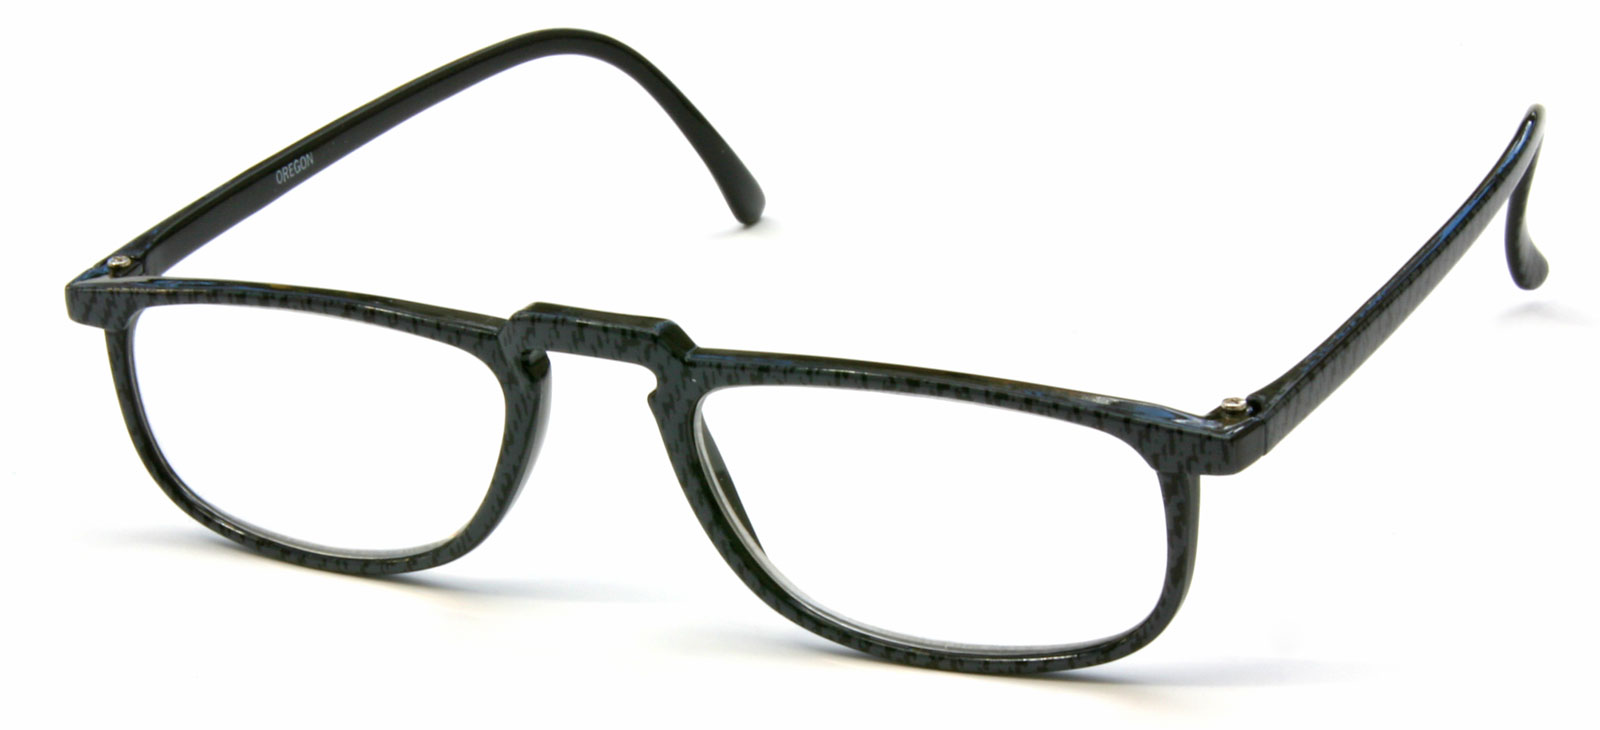 Pictures Of Reading Glasses | Free Download Clip Art | Free Clip ...